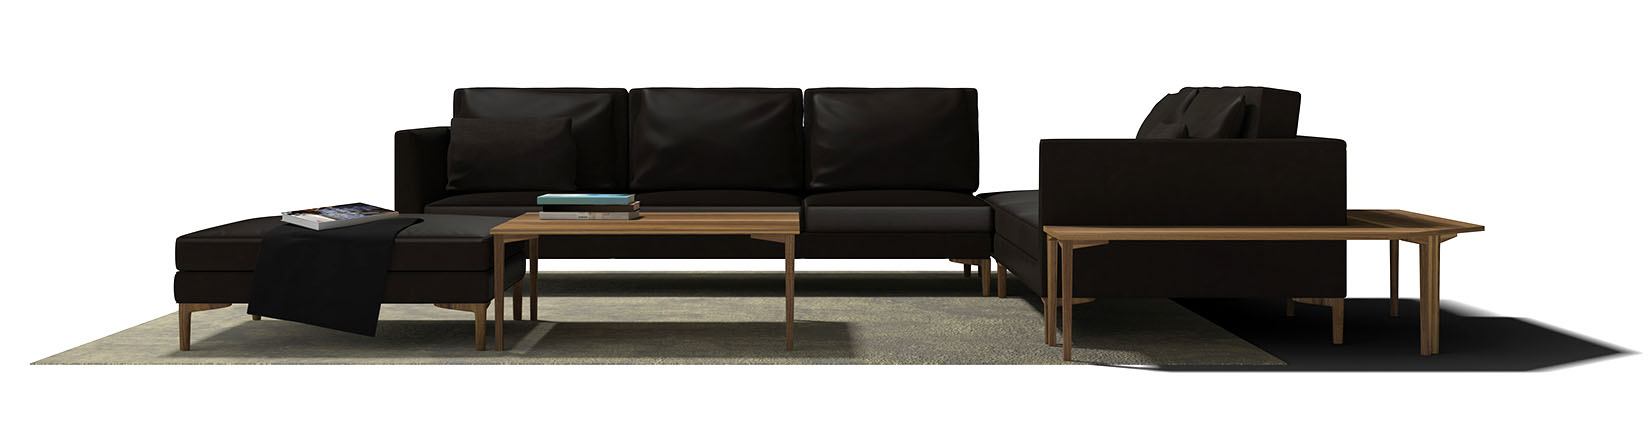 3d mdel sofa and table